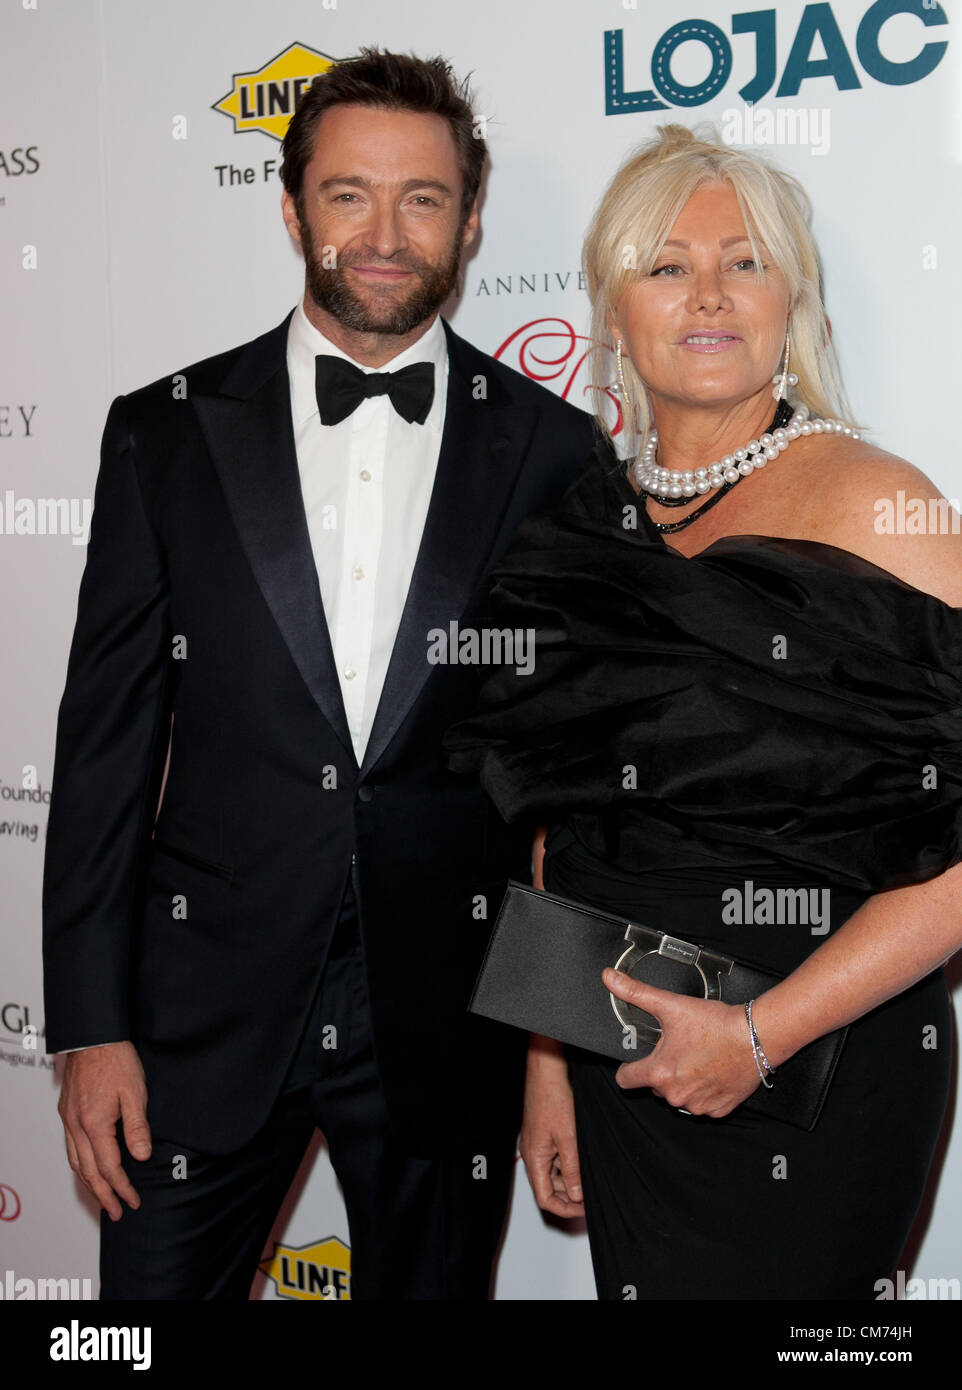 Hugh Jackman and wife Deborra-Lee Furness at the Fight Cancer Foundation's 20th Annual Red Ball on October 20, - Stock Image